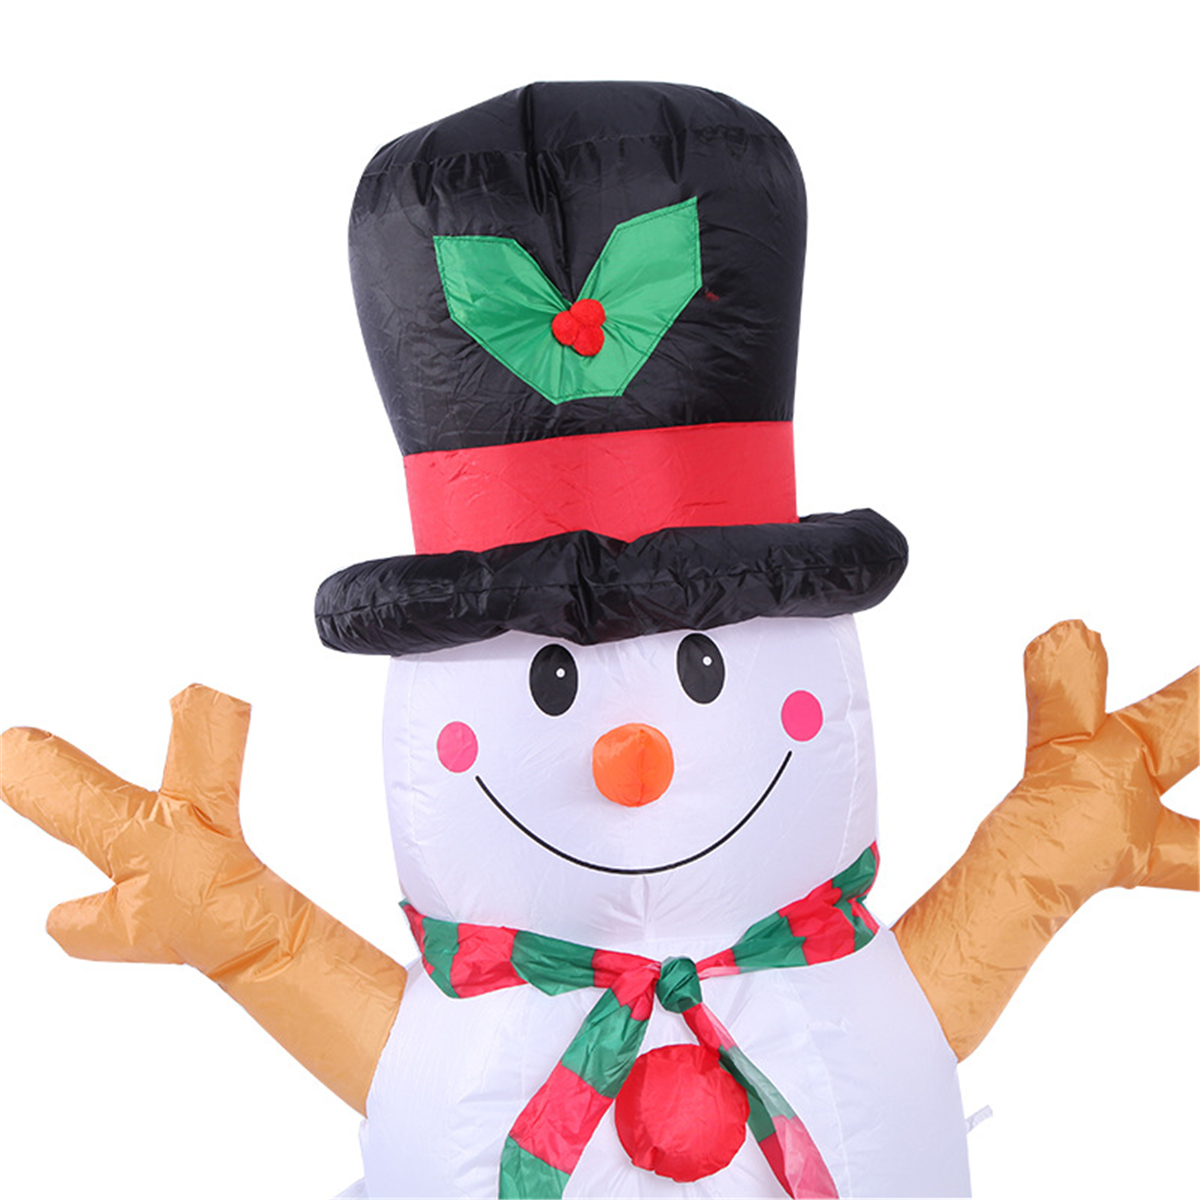 160cm LED Inflatable Snowman Christmas Indoor Outdoor Home Yard Party Decorations